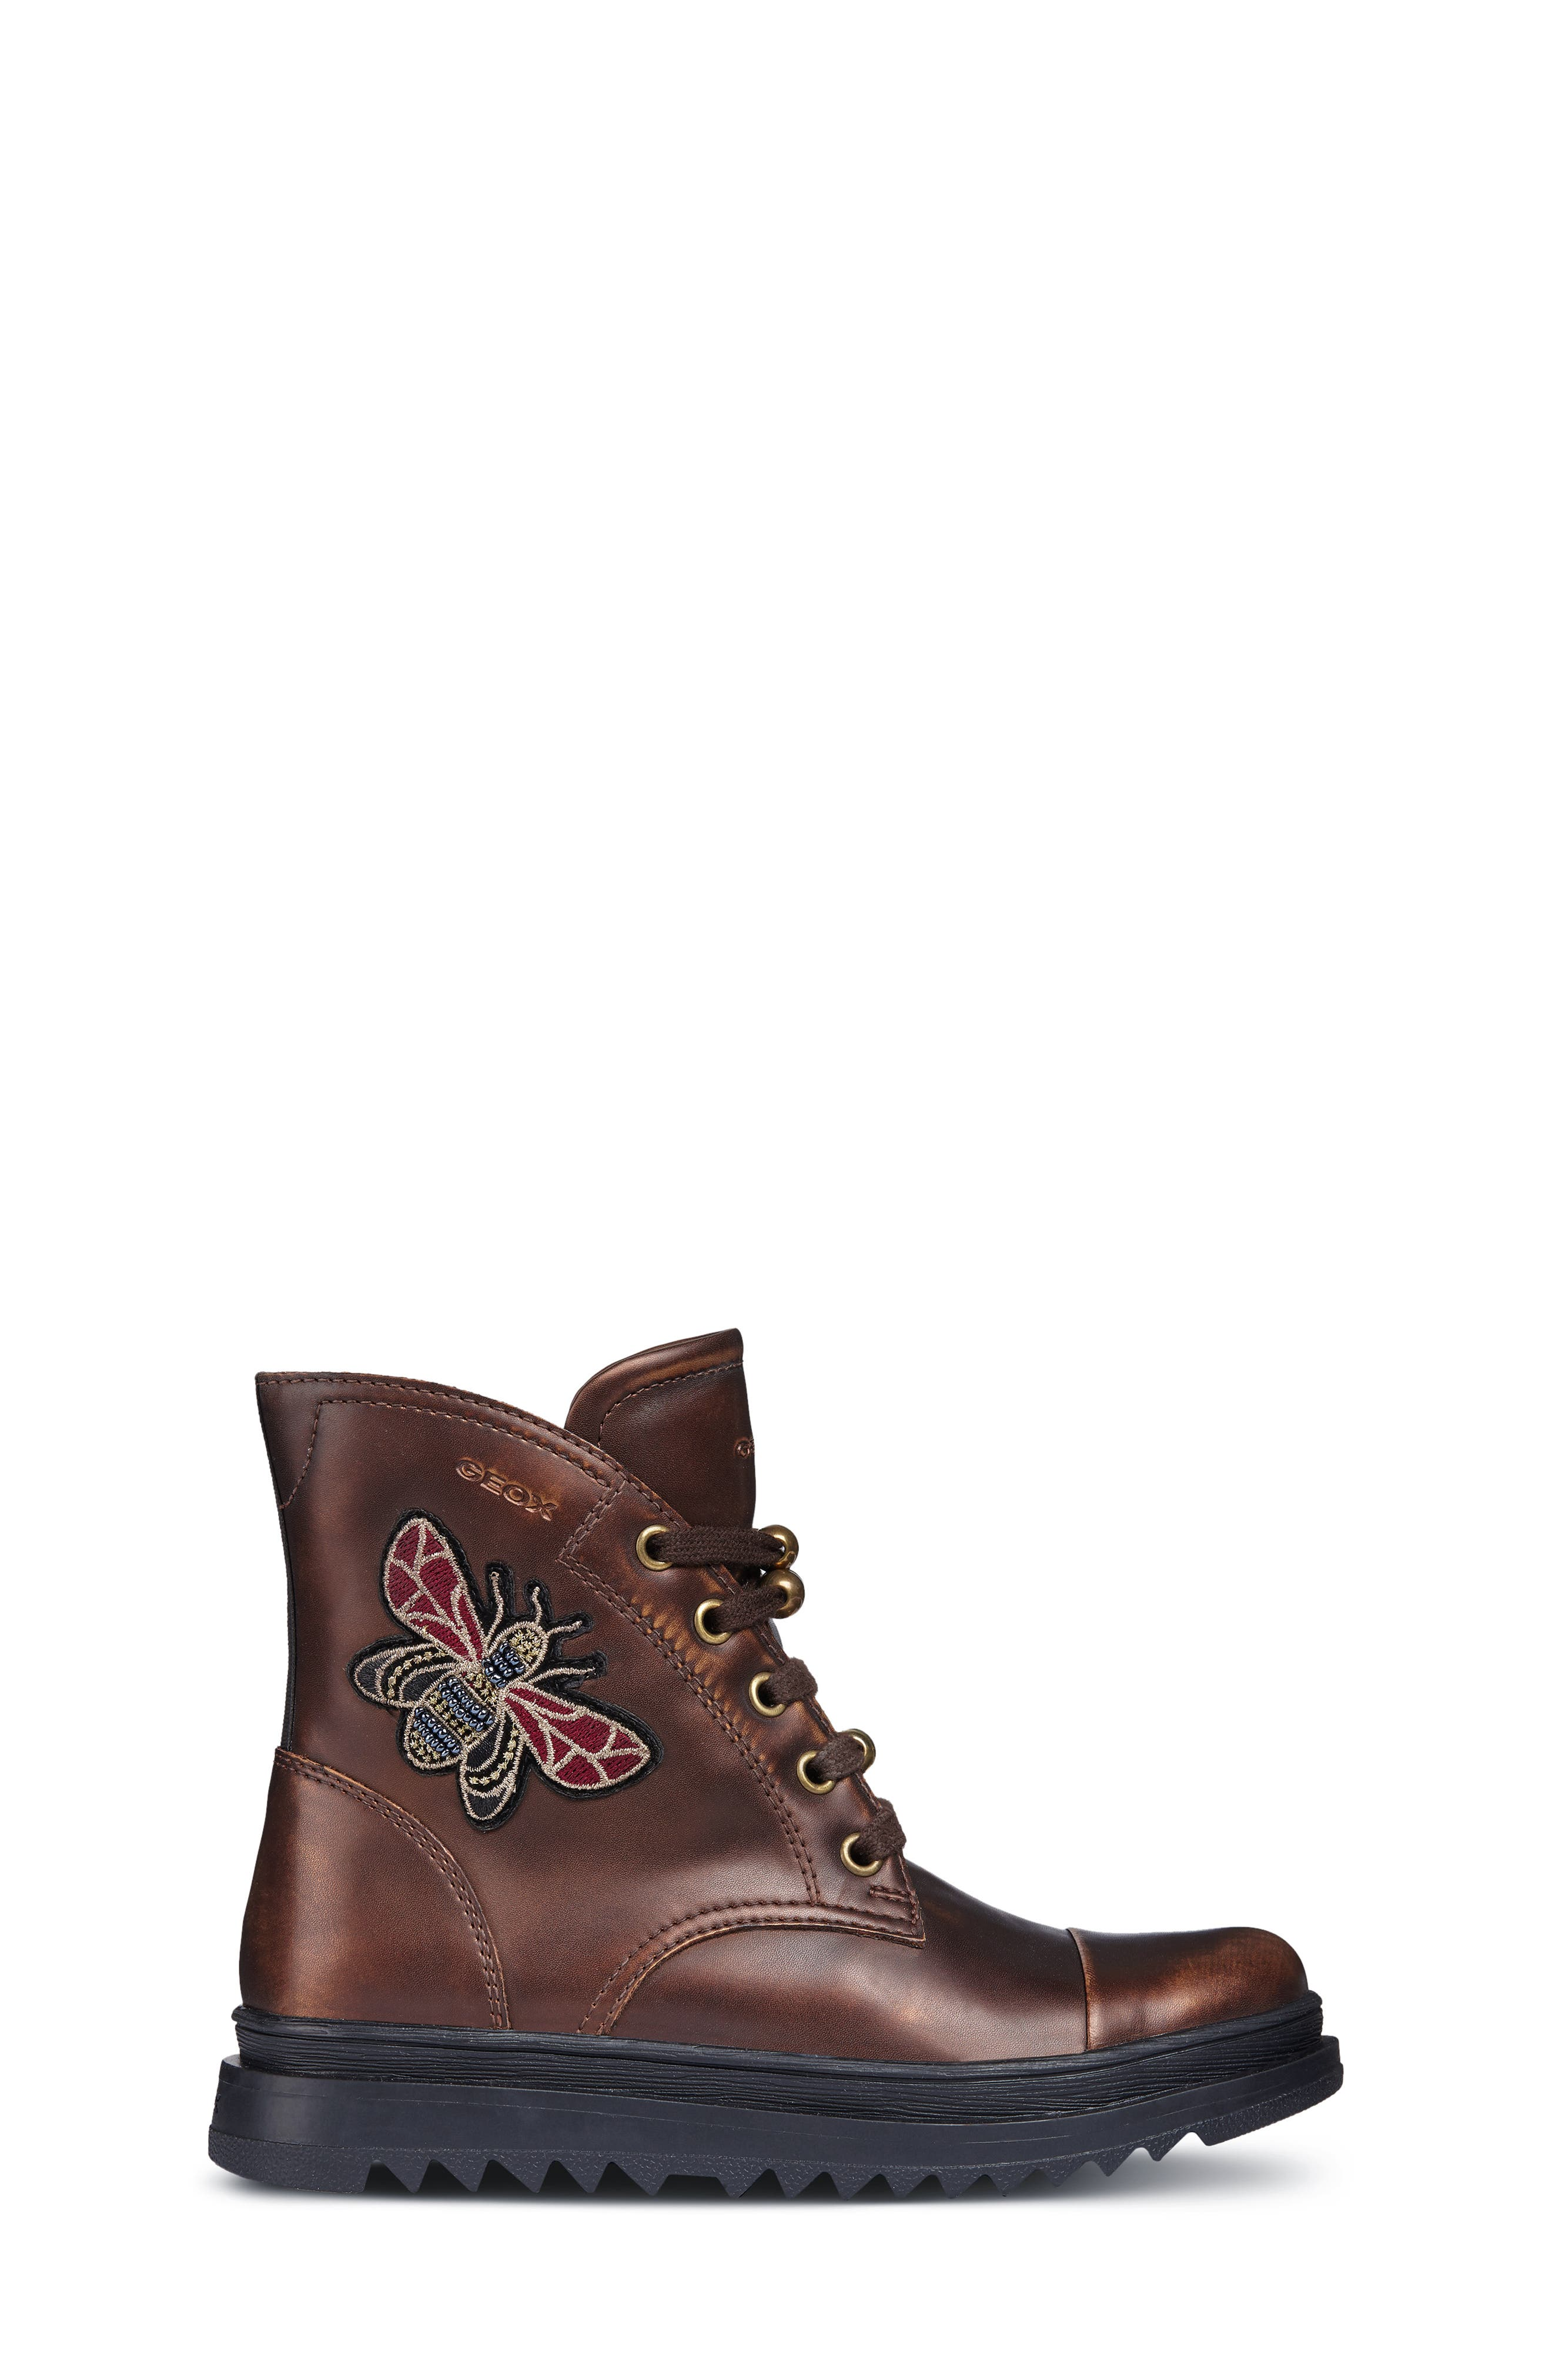 Gilly Jaw 2 Lace-Up Boot,                             Alternate thumbnail 3, color,                             BRONZE